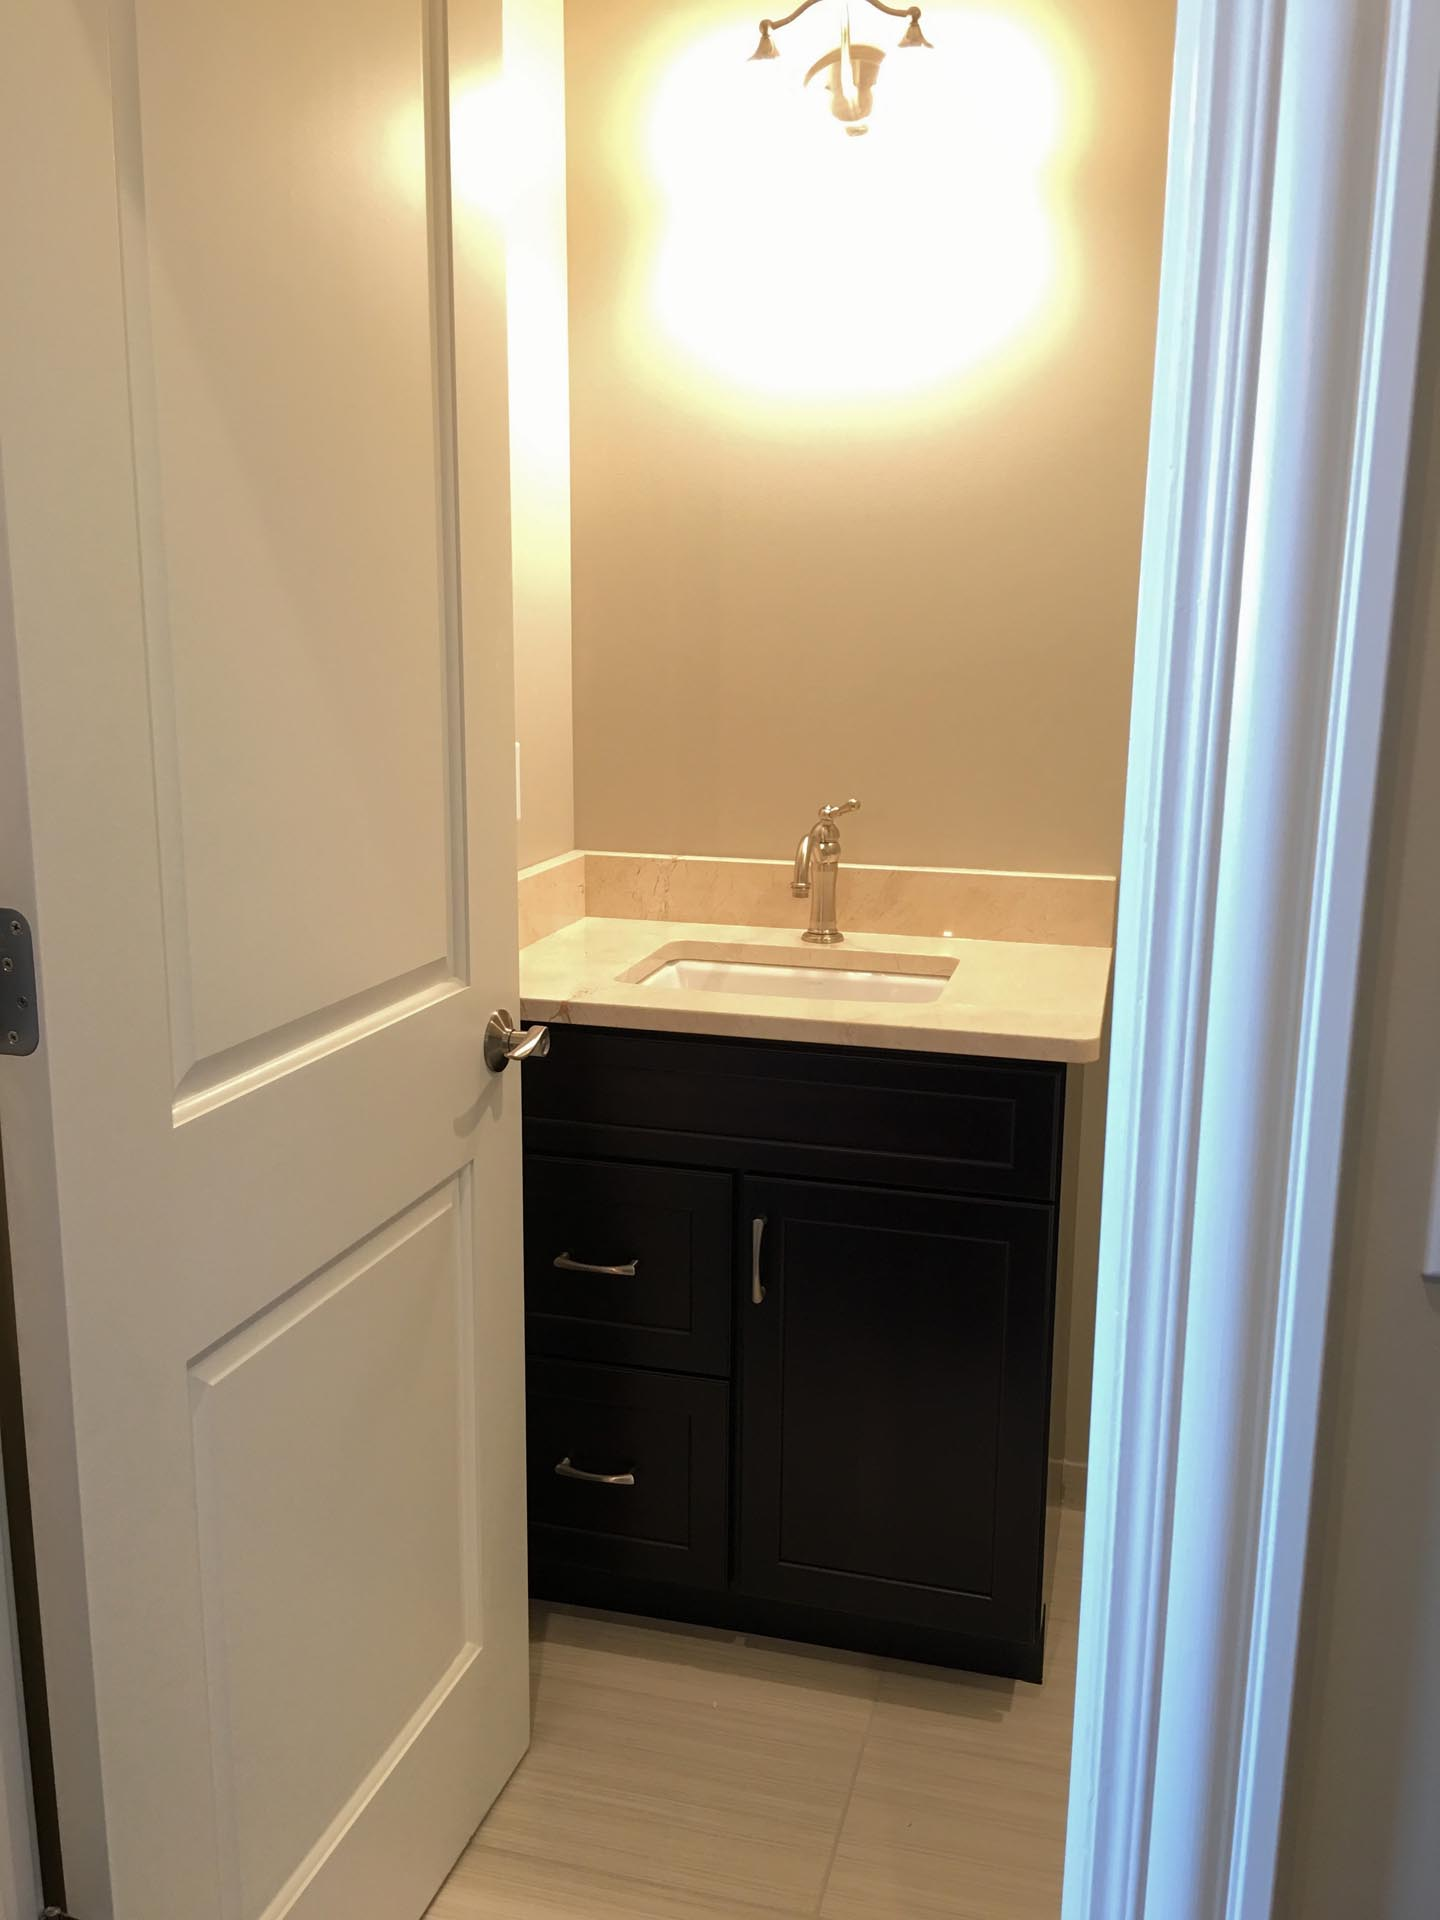 Bathroom Sink and Faucet | H Residence | Midland, MI